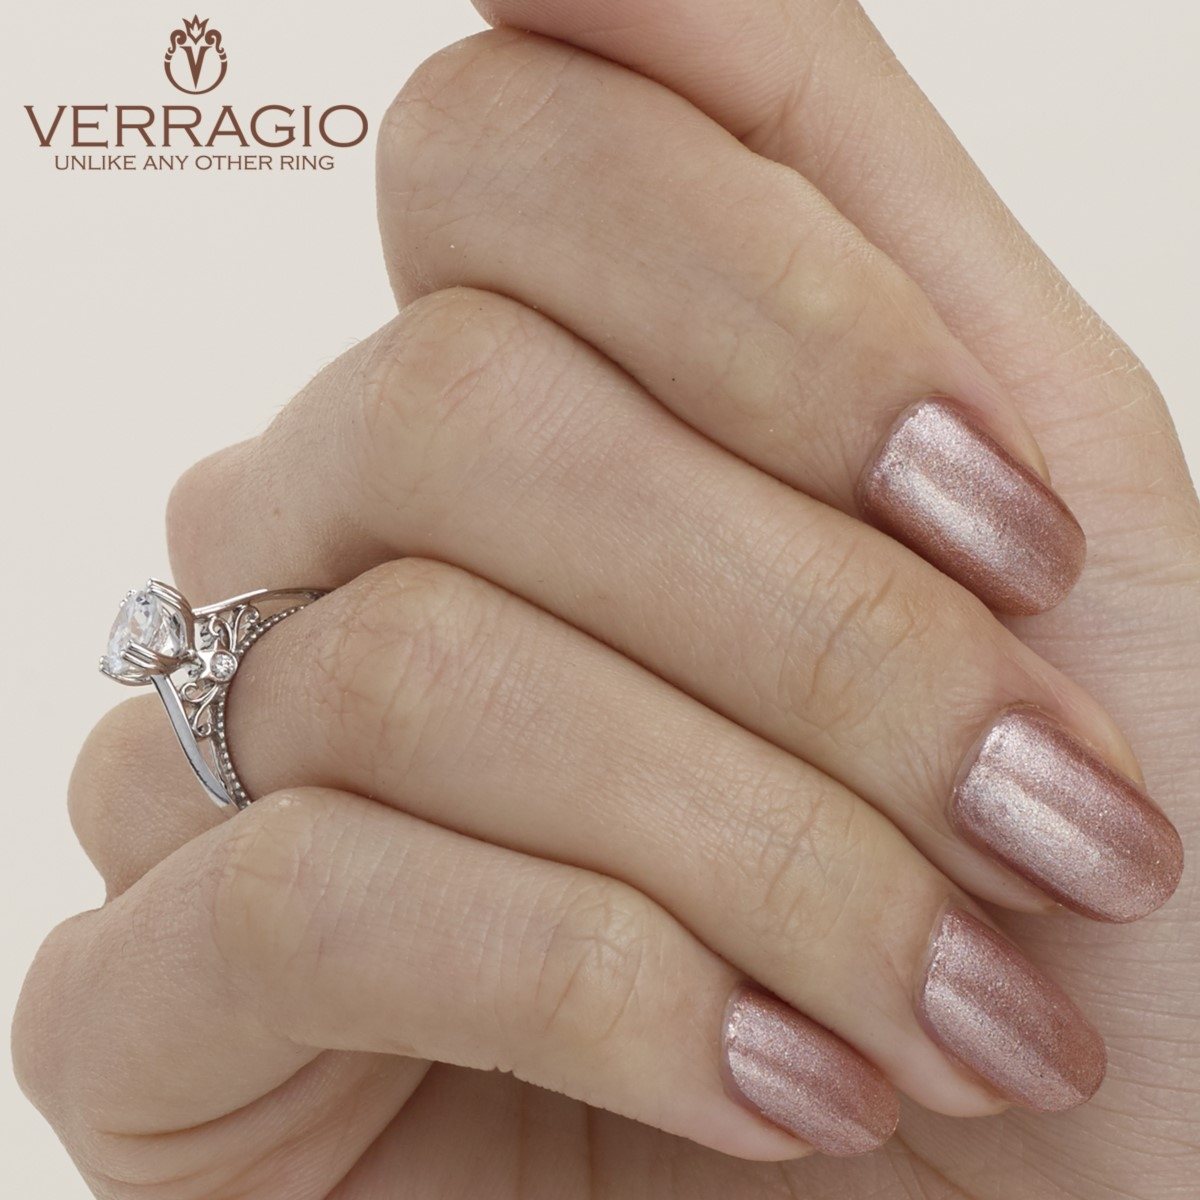 Verragio Parisian-120 Platinum Engagement Ring Alternative View 7